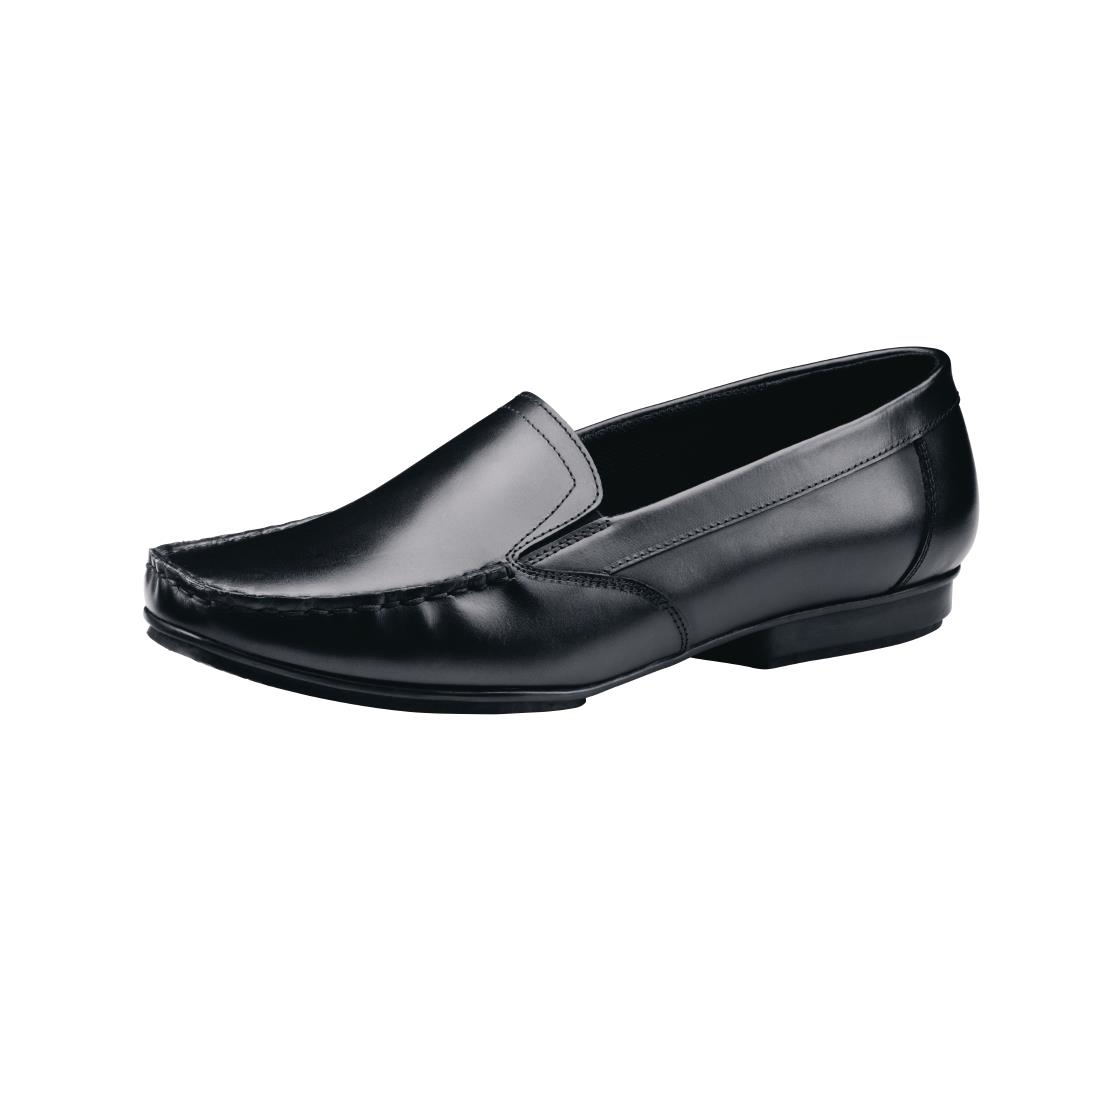 Click to view product details and reviews for Shoes For Crews Jenni Slip On Dress Shoe Black Size 36.